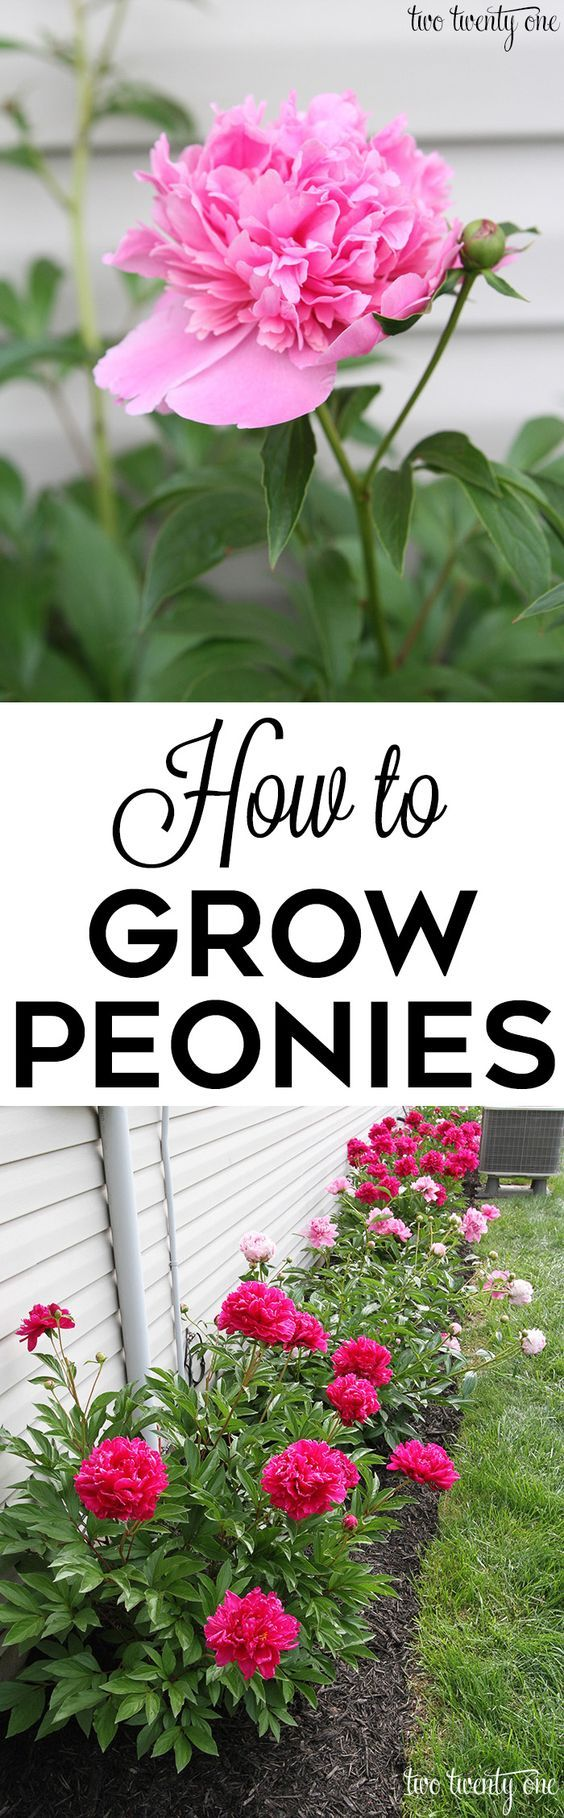 GREAT tips on how to grow peonies!